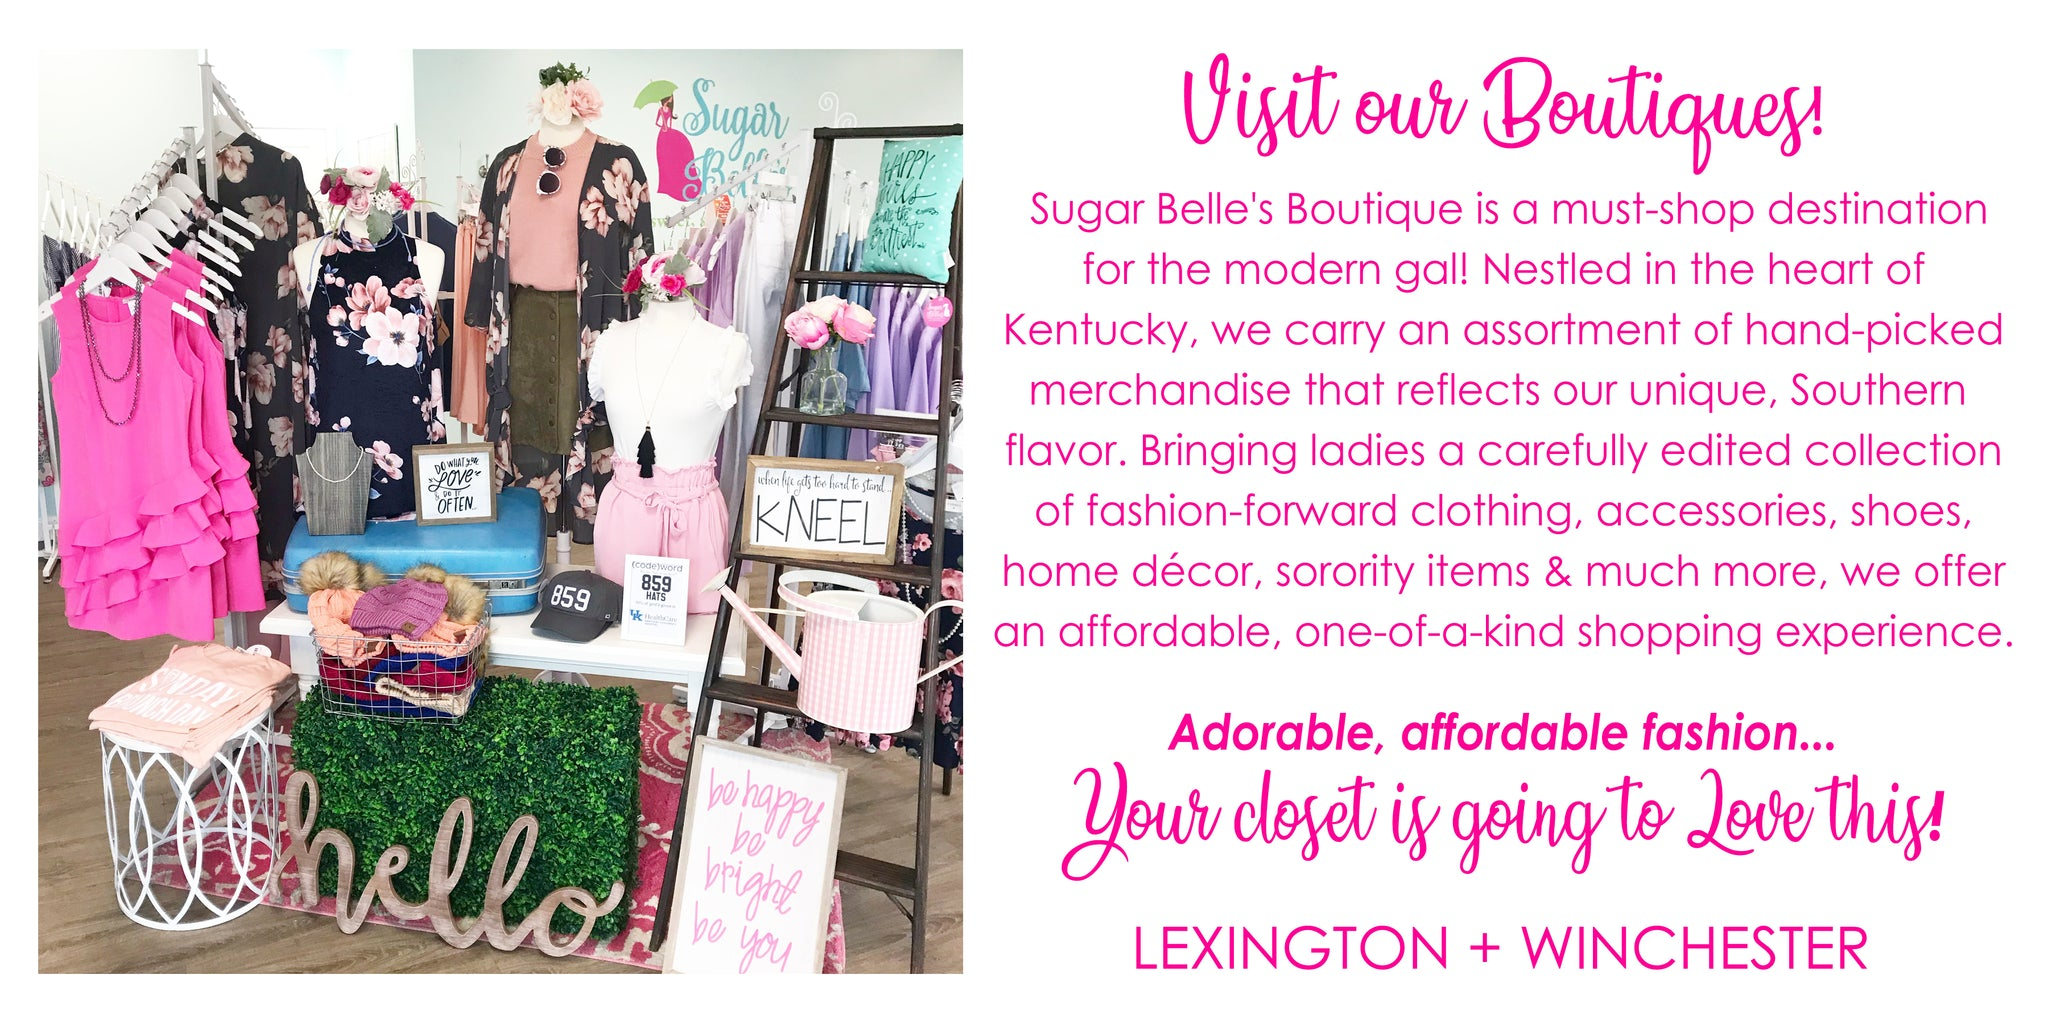 Sugar Belle's Boutique is a must-shop destination for the modern woman!  Nestled in the heart of Kentucky, we carry an assortment of hand-picked merchandise that reflects our unique, Southern flavor.   Bringing ladies a carefully edited collection of fashion-forward clothing, accessories, shoes home décor, sorority items & much more, we offer an affordable, one-of-a-kind shopping experience.  Adorable, affordable fashion... Your closet is going to LOVE this!